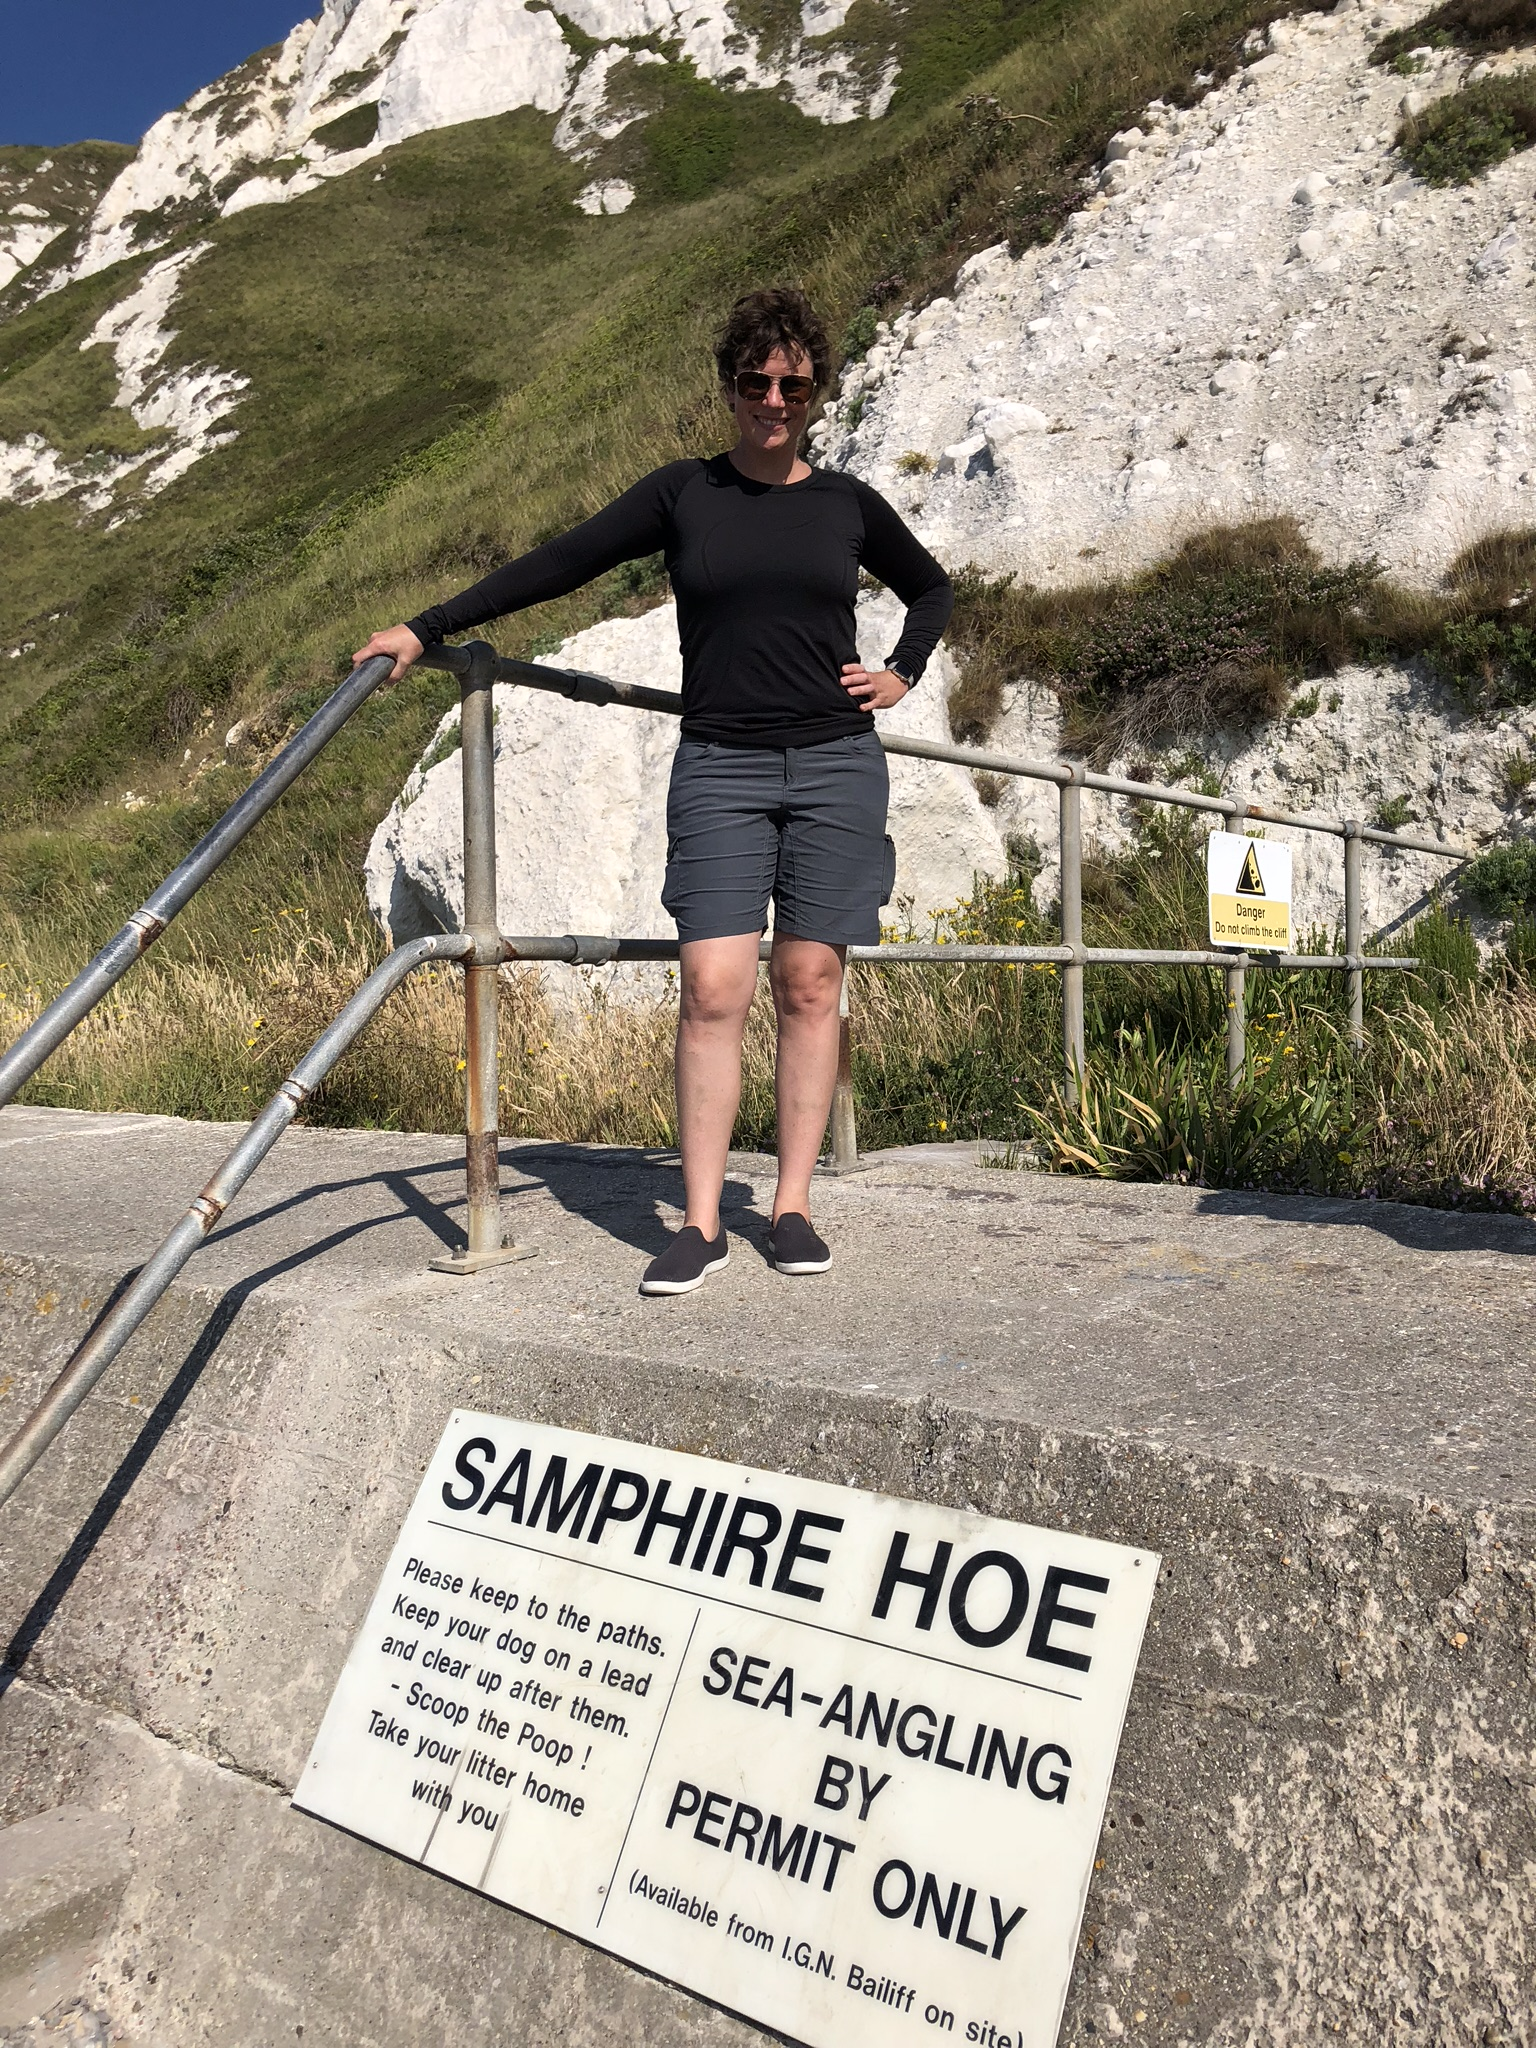 We found Samphire Hoe - my starting point - after a good deal of searching